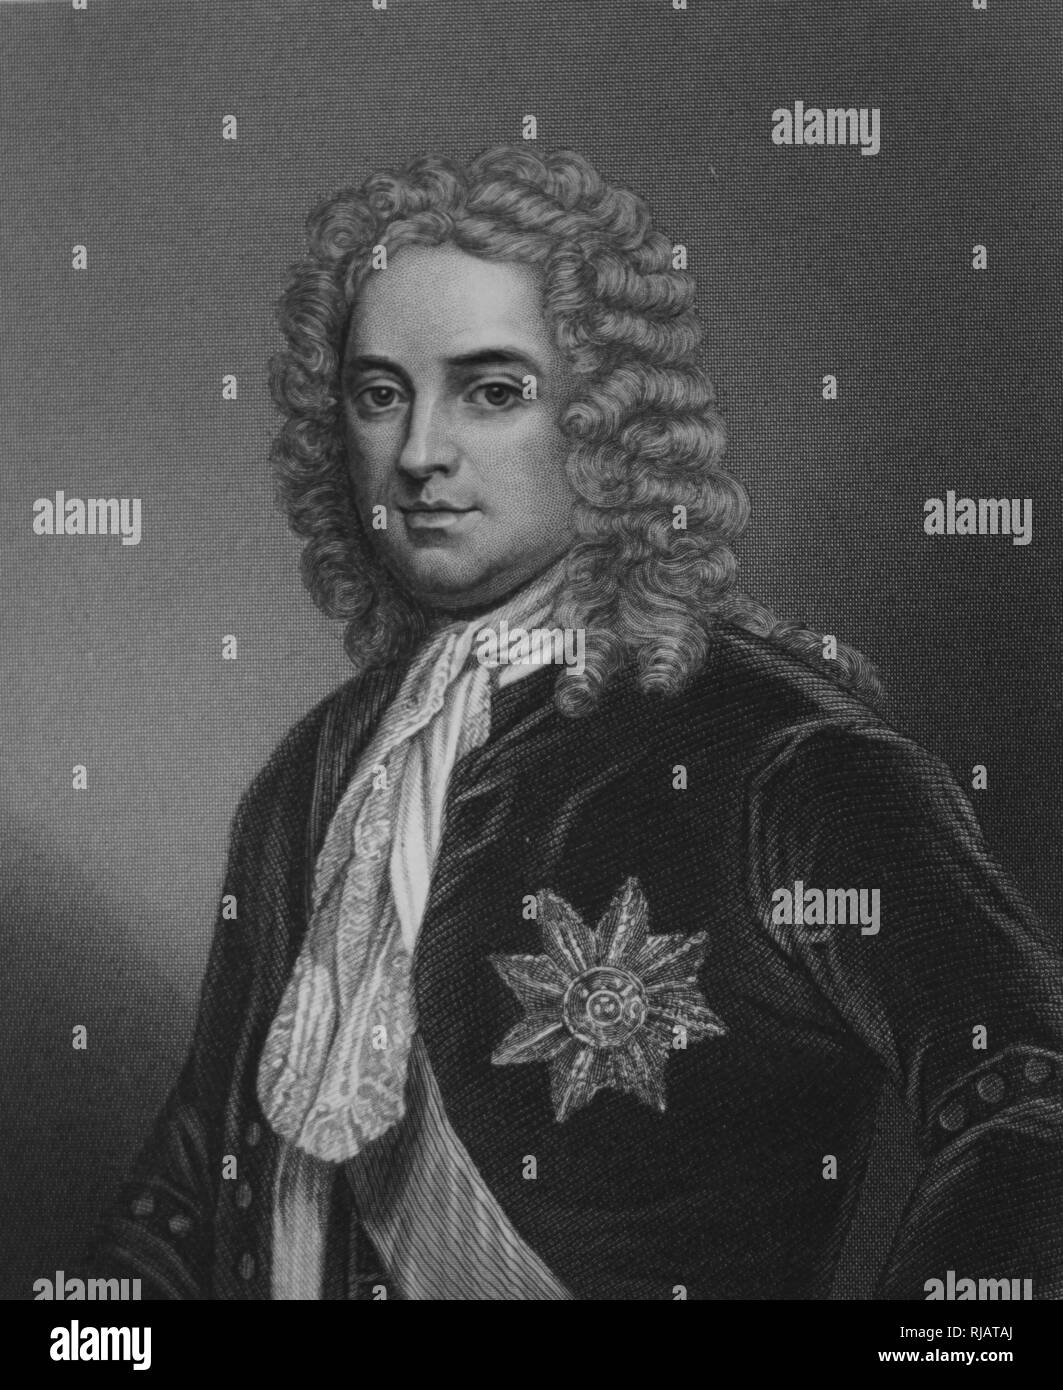 Robert Walpole, (1676 -  1745), British statesman who is generally regarded as the de facto first Prime Minister of Great Britain. holds the record as the longest-serving Prime Minister in British history. - Stock Image